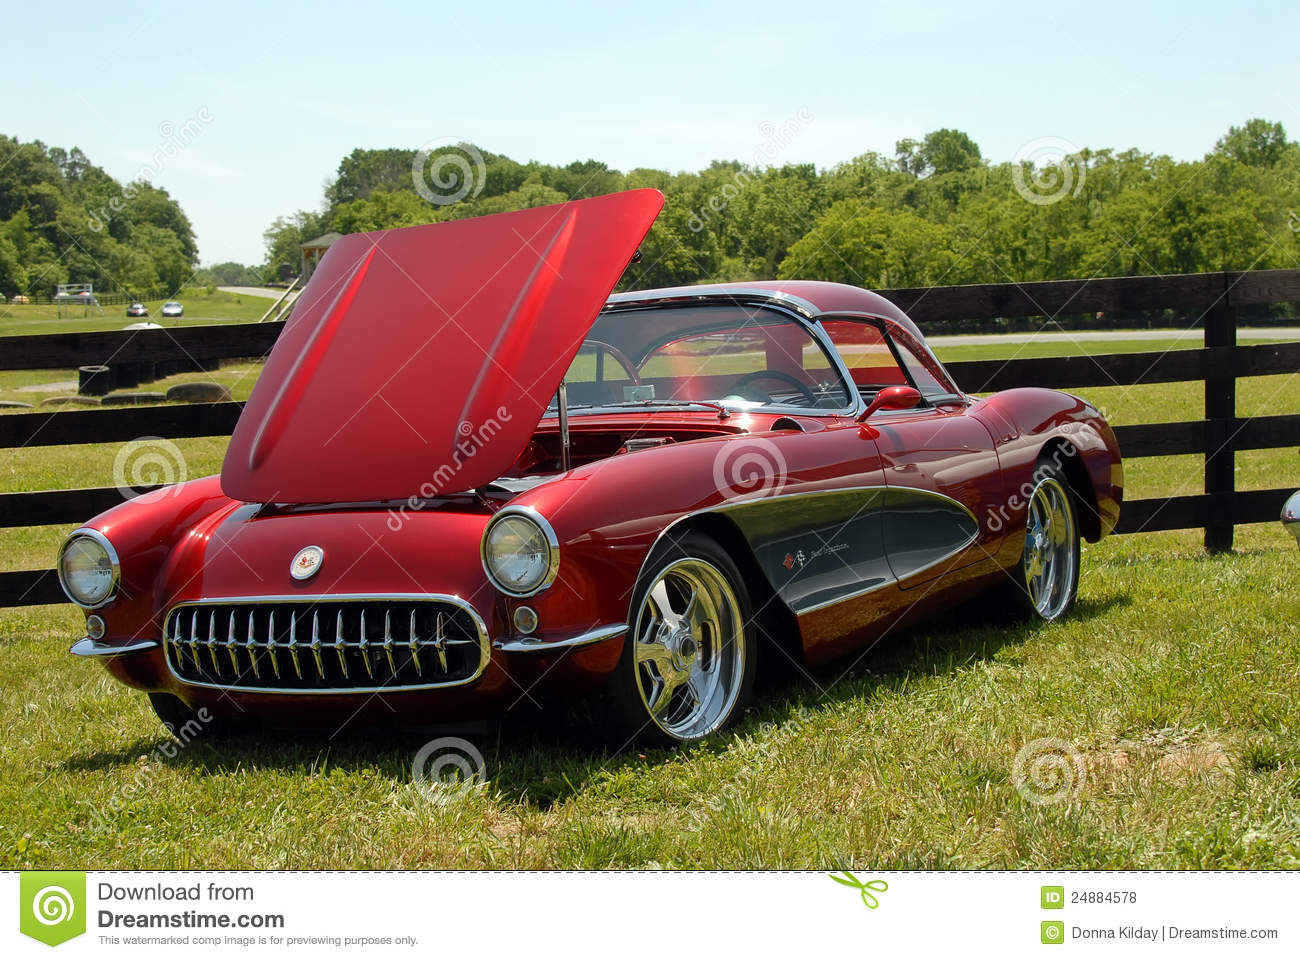 Classic maroon Corvette Sports Car on display at vintage car show at